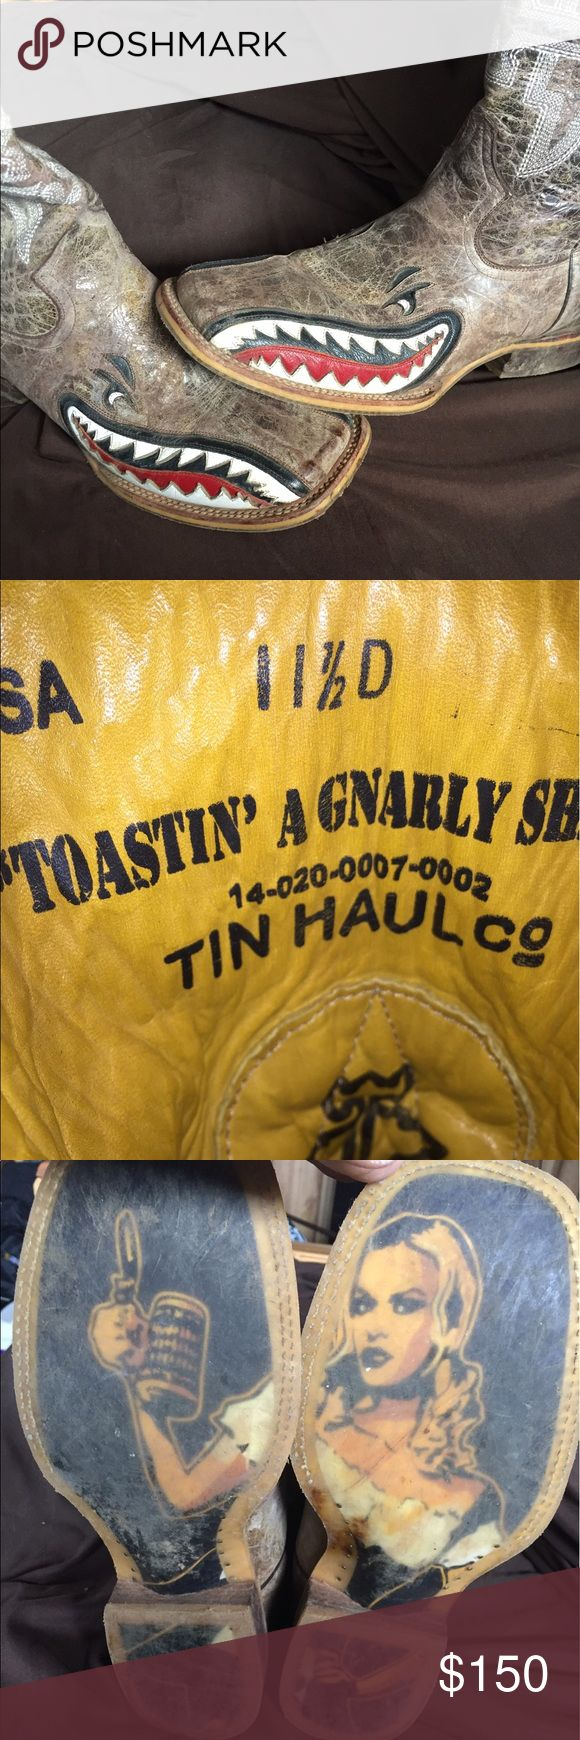 Tin Haul boots Tin Haul boots. Worn 5 times tin haul Shoes Boots